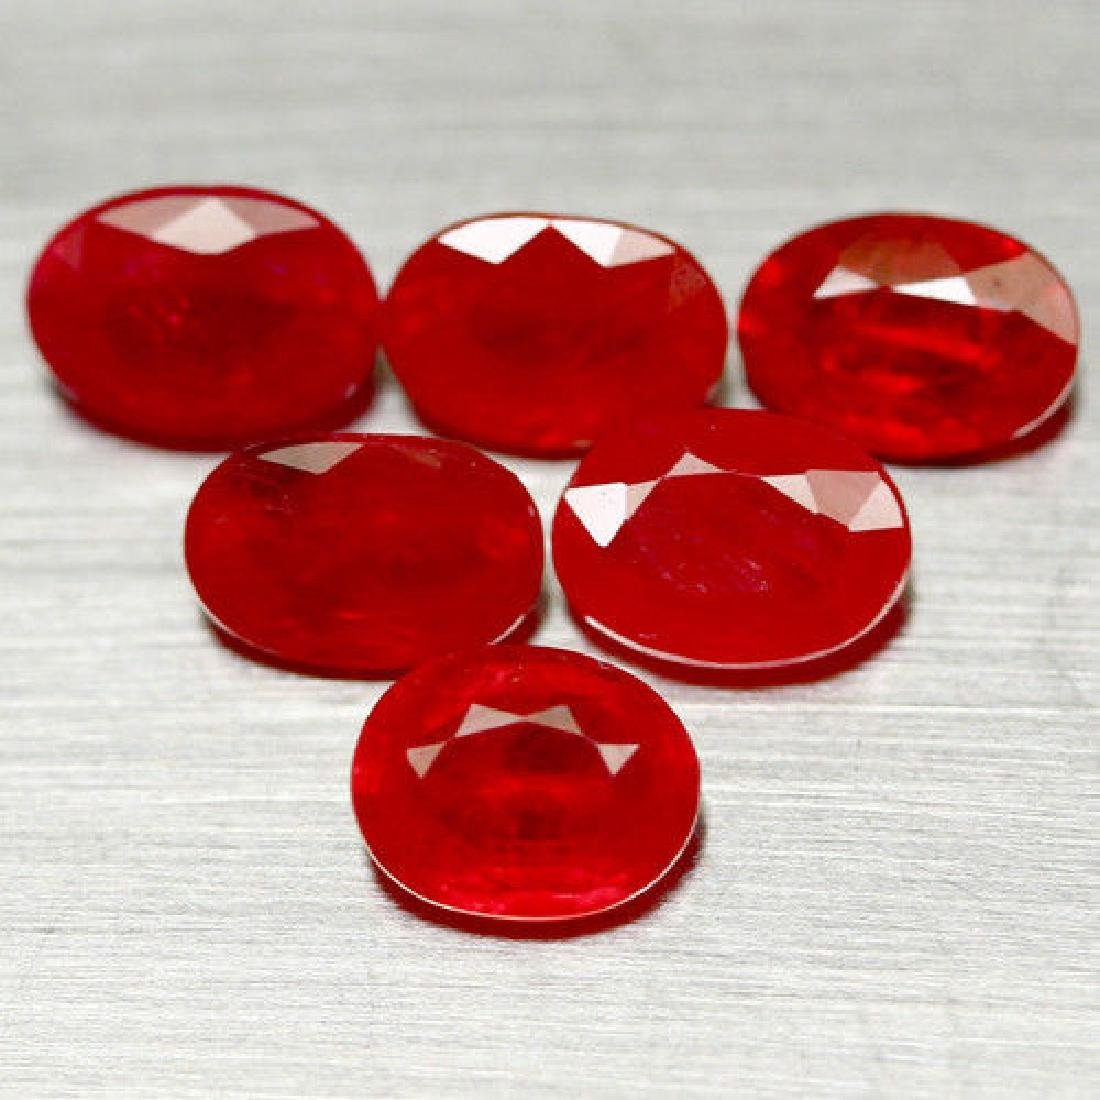 8.74 CT NATURAL HEATED! 9PCS PADPARADSCHA AFRICAN